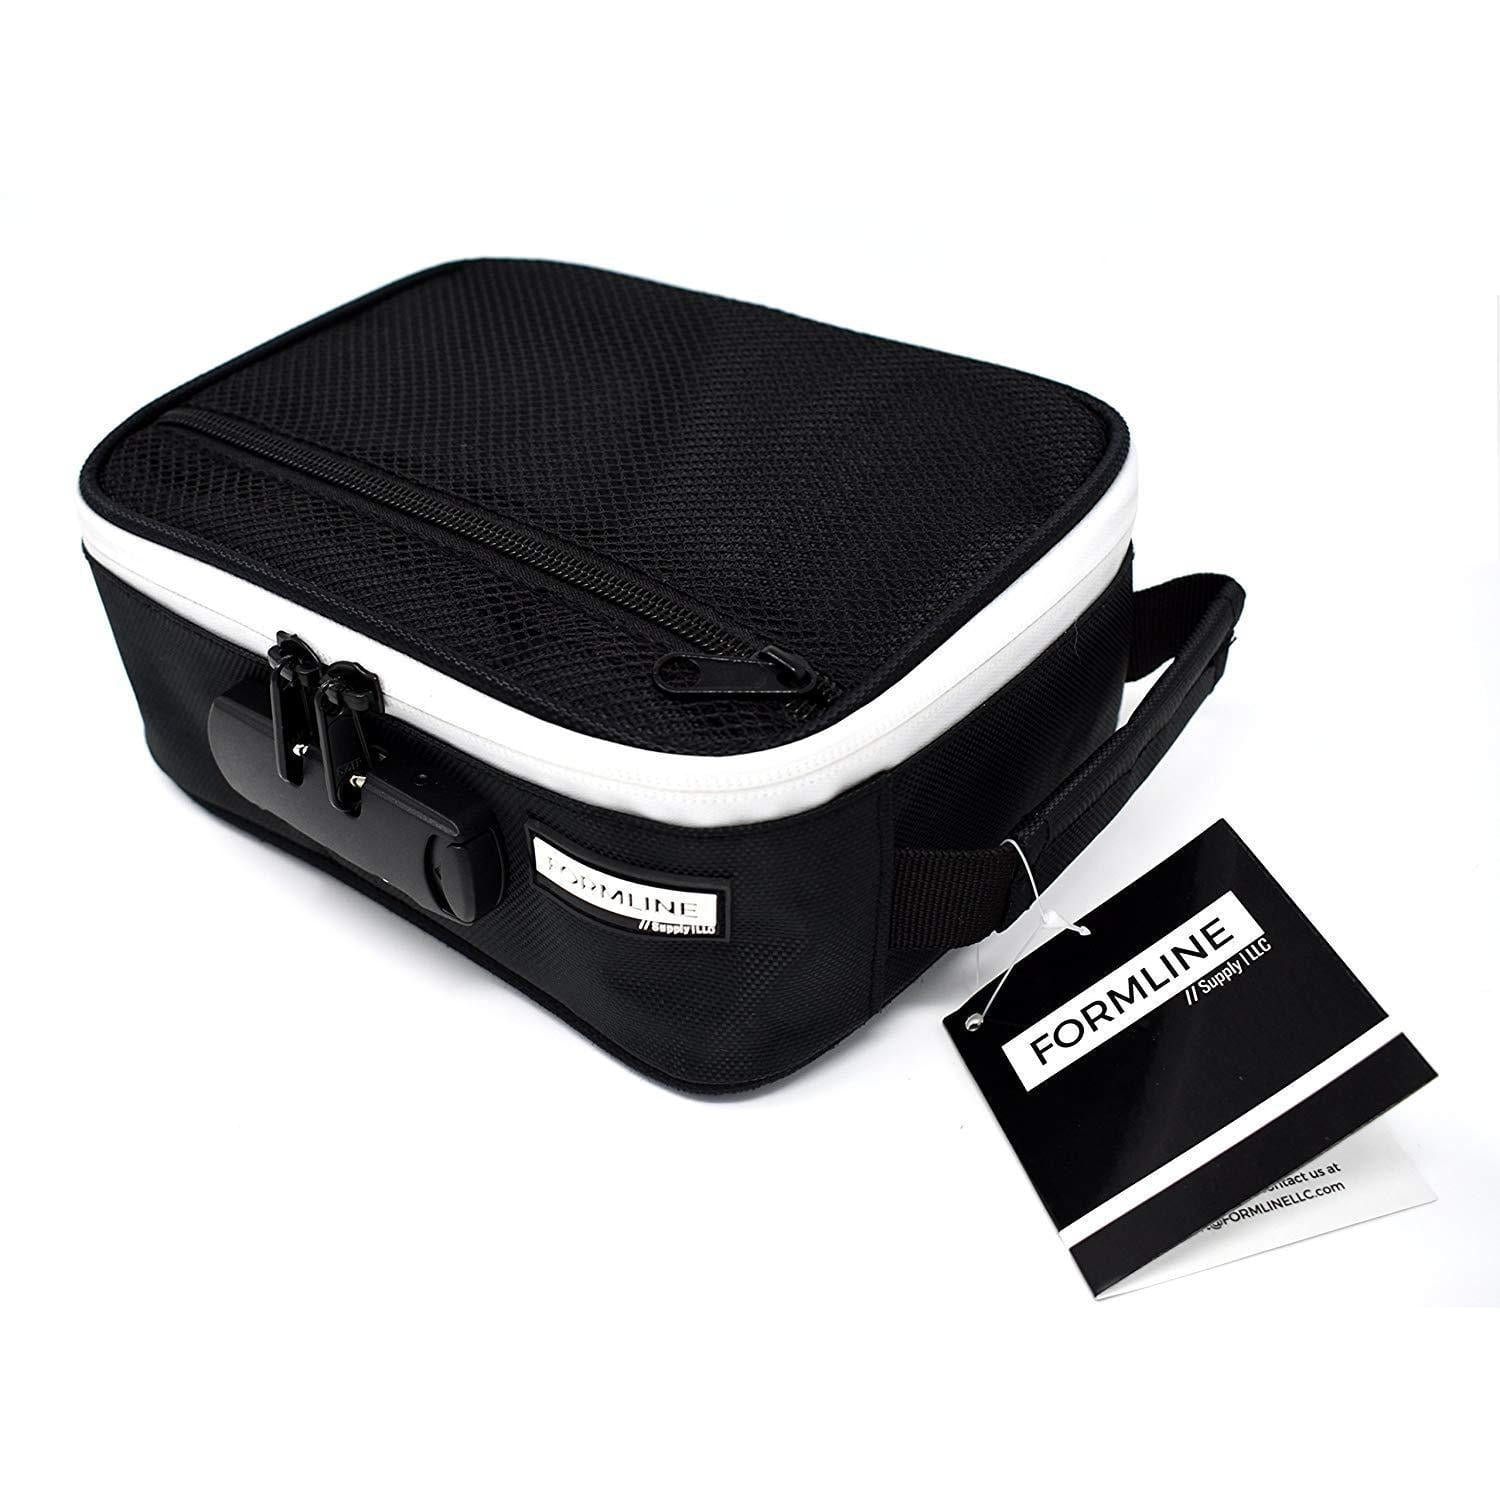 Formline Smell Proof Case with Combination Lock 8x6x3 - Premium Odor Proof Bag for Herb Grinders, Pax Vaporizers & Rolling Accessories. Eliminate Odor - No Smell Escapes this Discreet Stash Container.